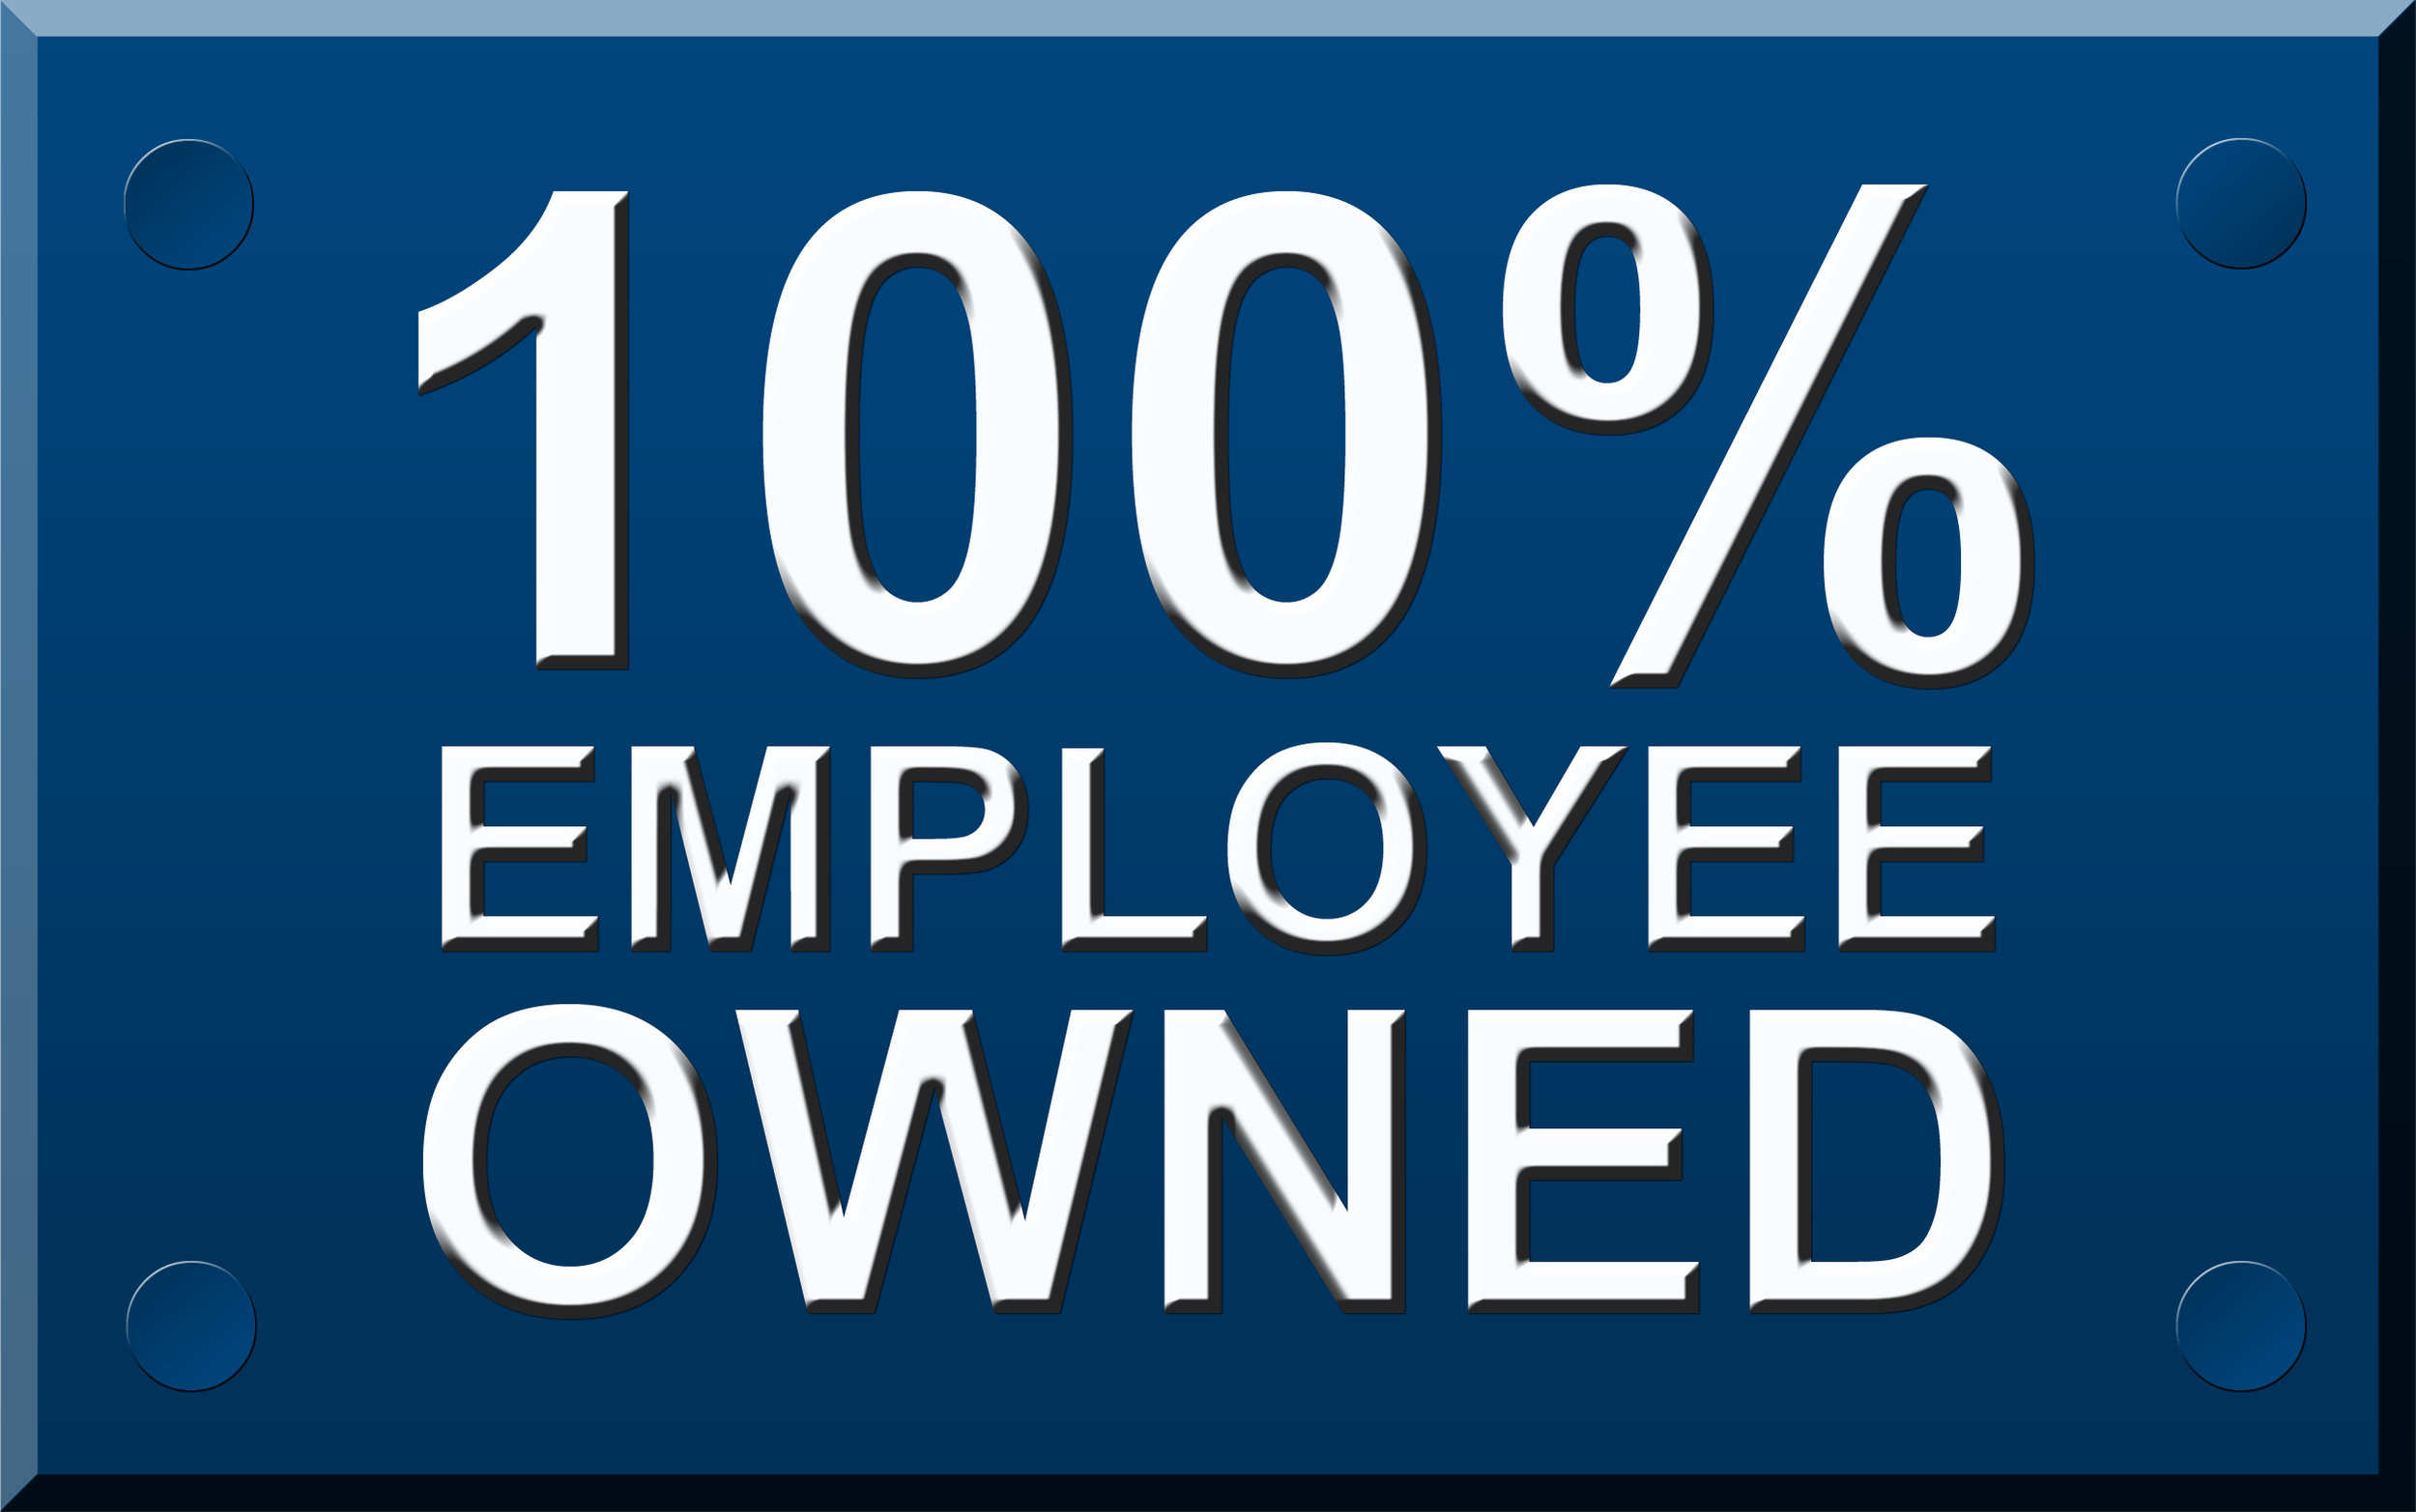 100% employee owned and operated analytical testing laboratory in Southern California